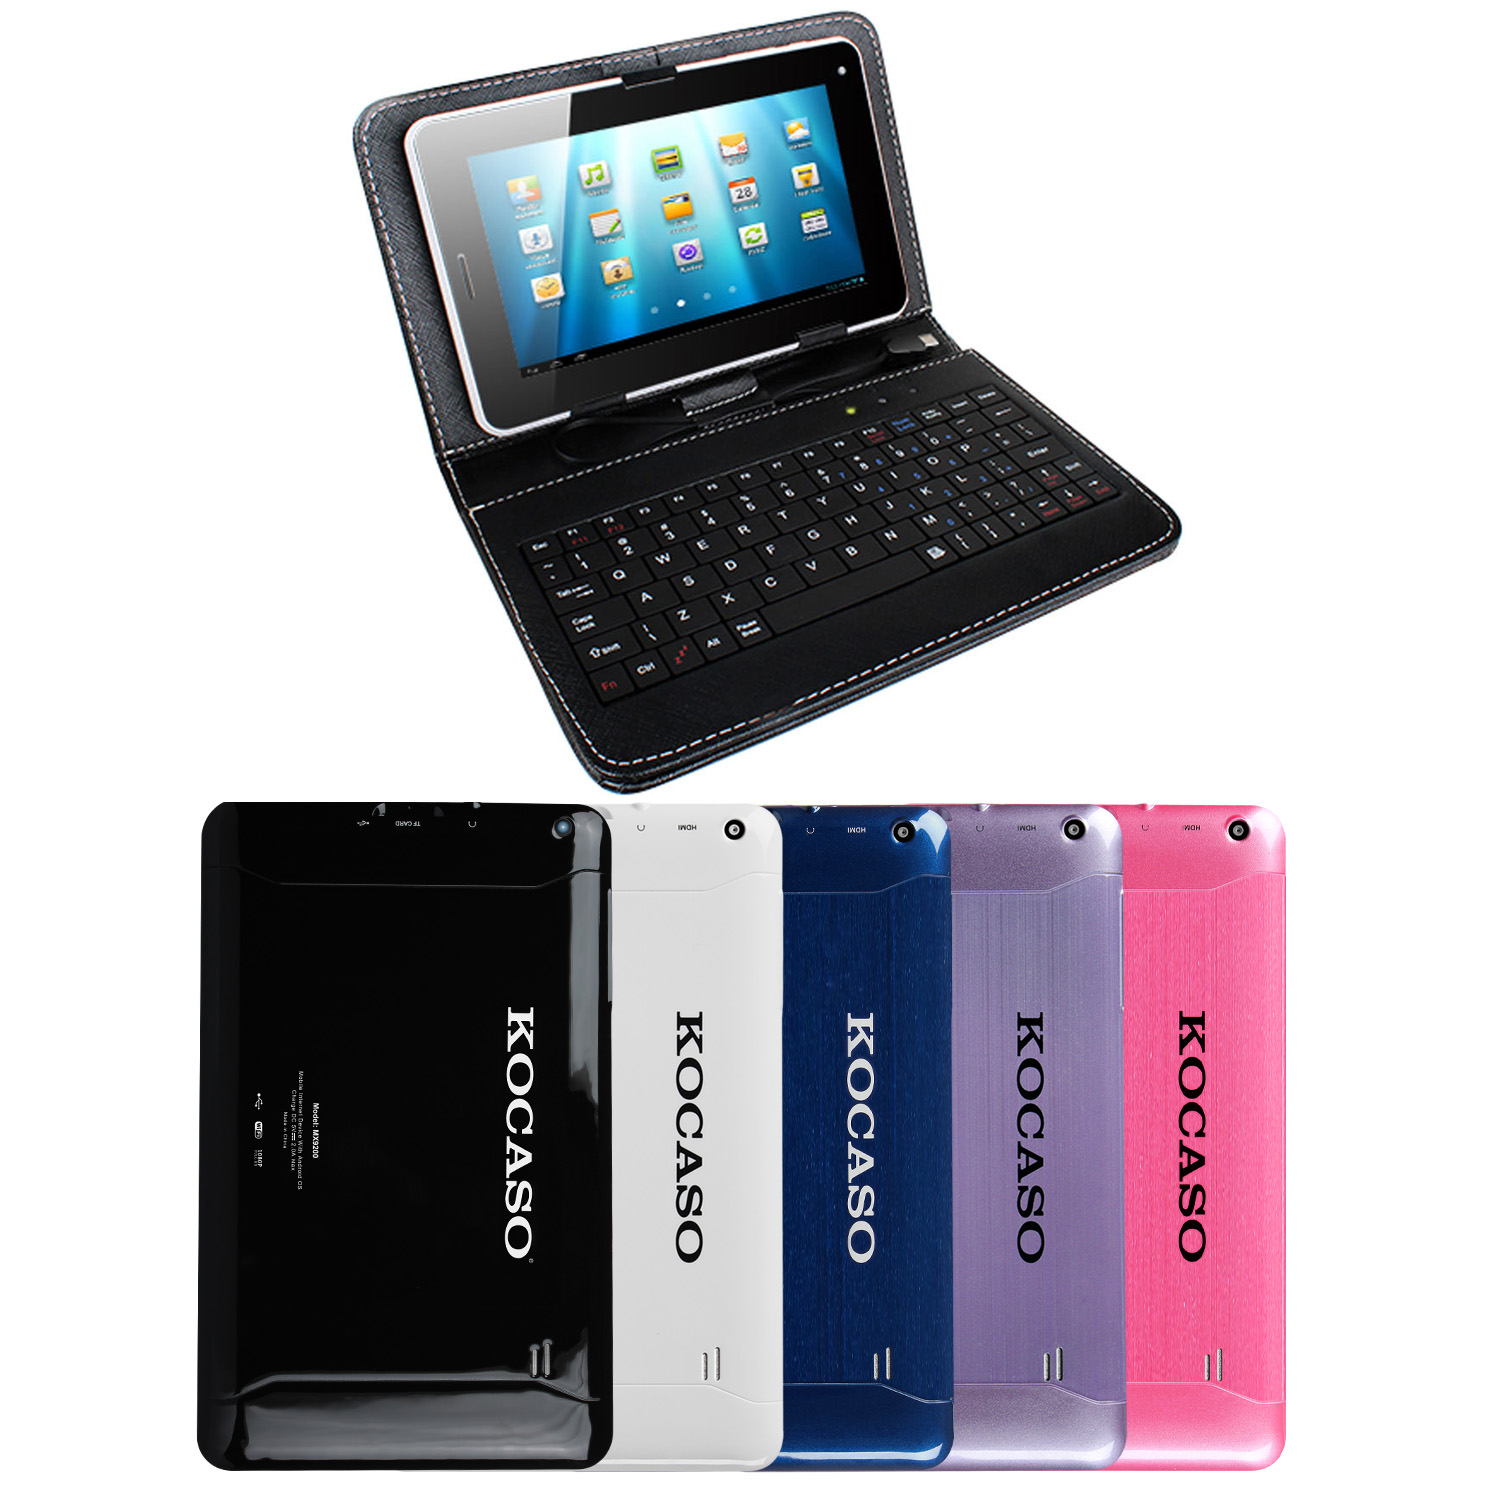 KOCASO MX9200 9 inch Quad Core 8GB Google Android Tablet (Black)